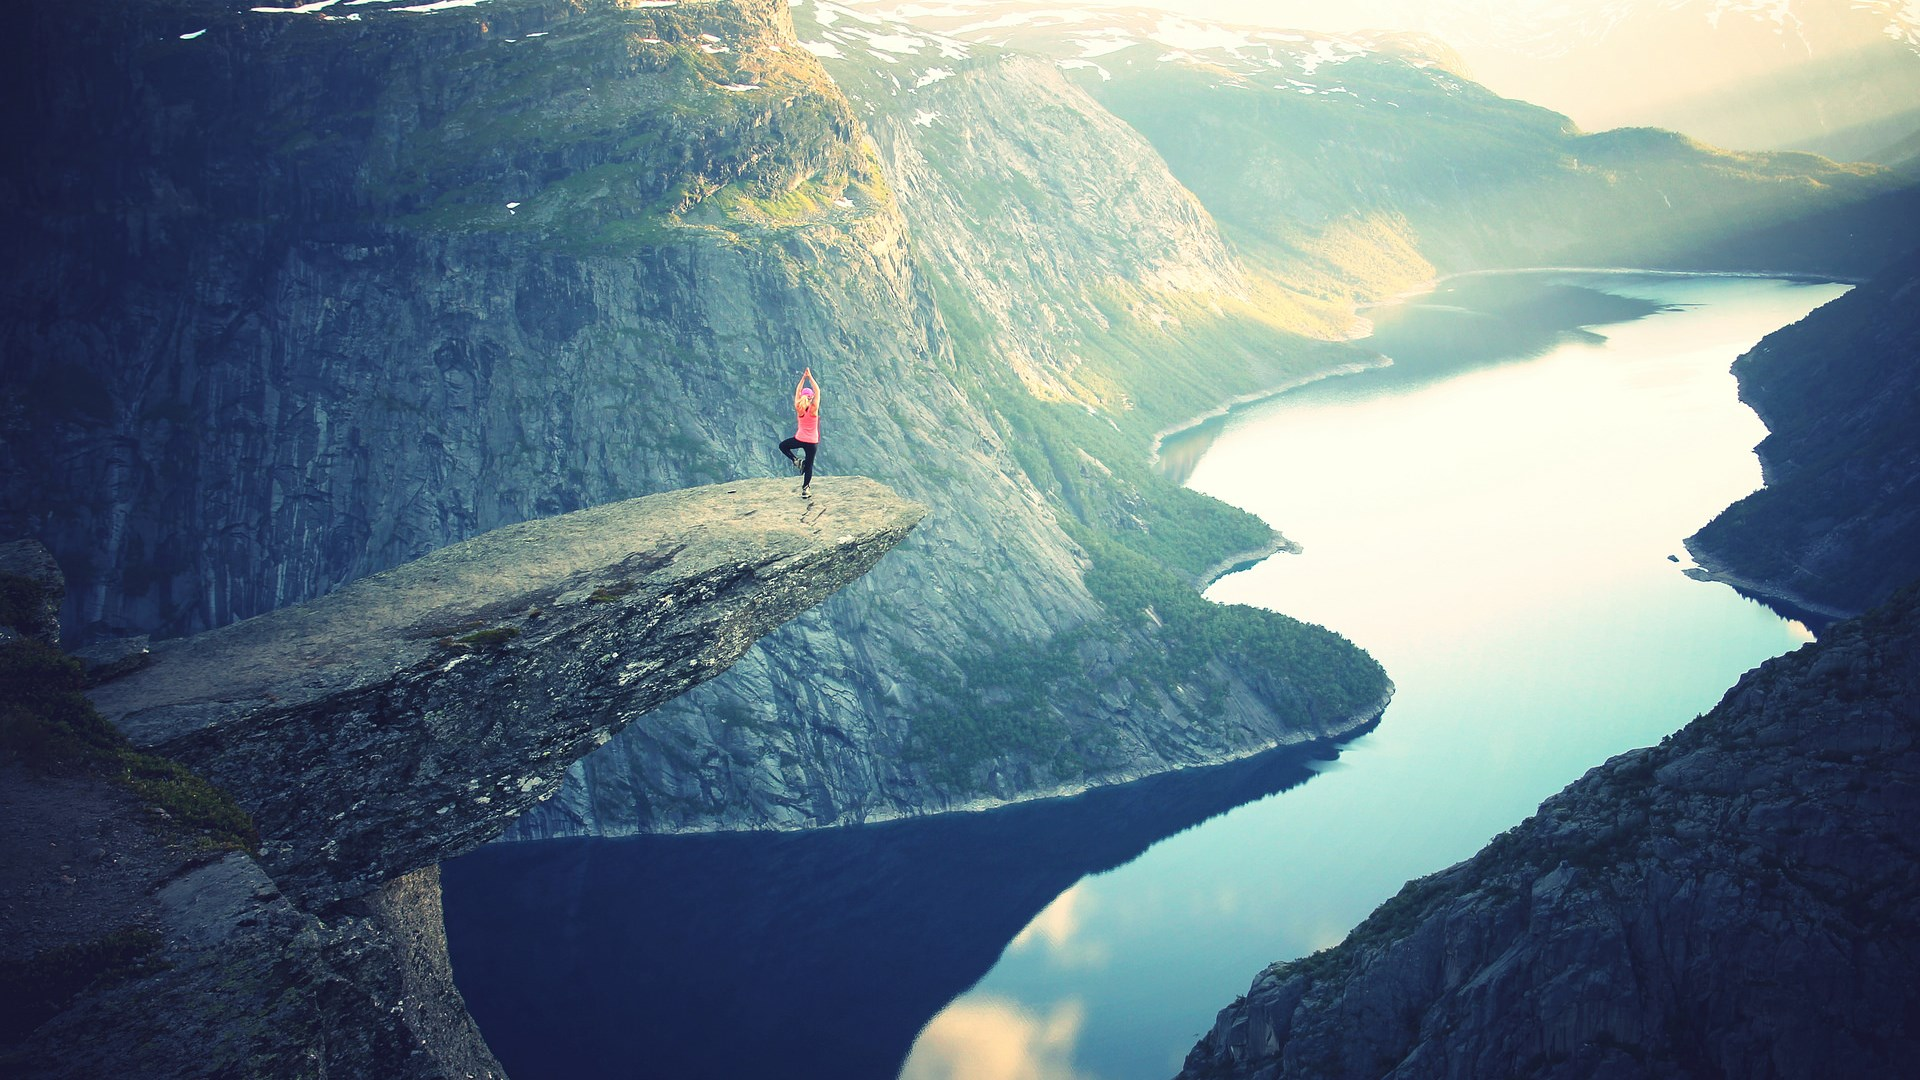 Amazing Earth Trolltunga HD [1920x1080] : wallpaper  Amazing Pictures Of The Earth